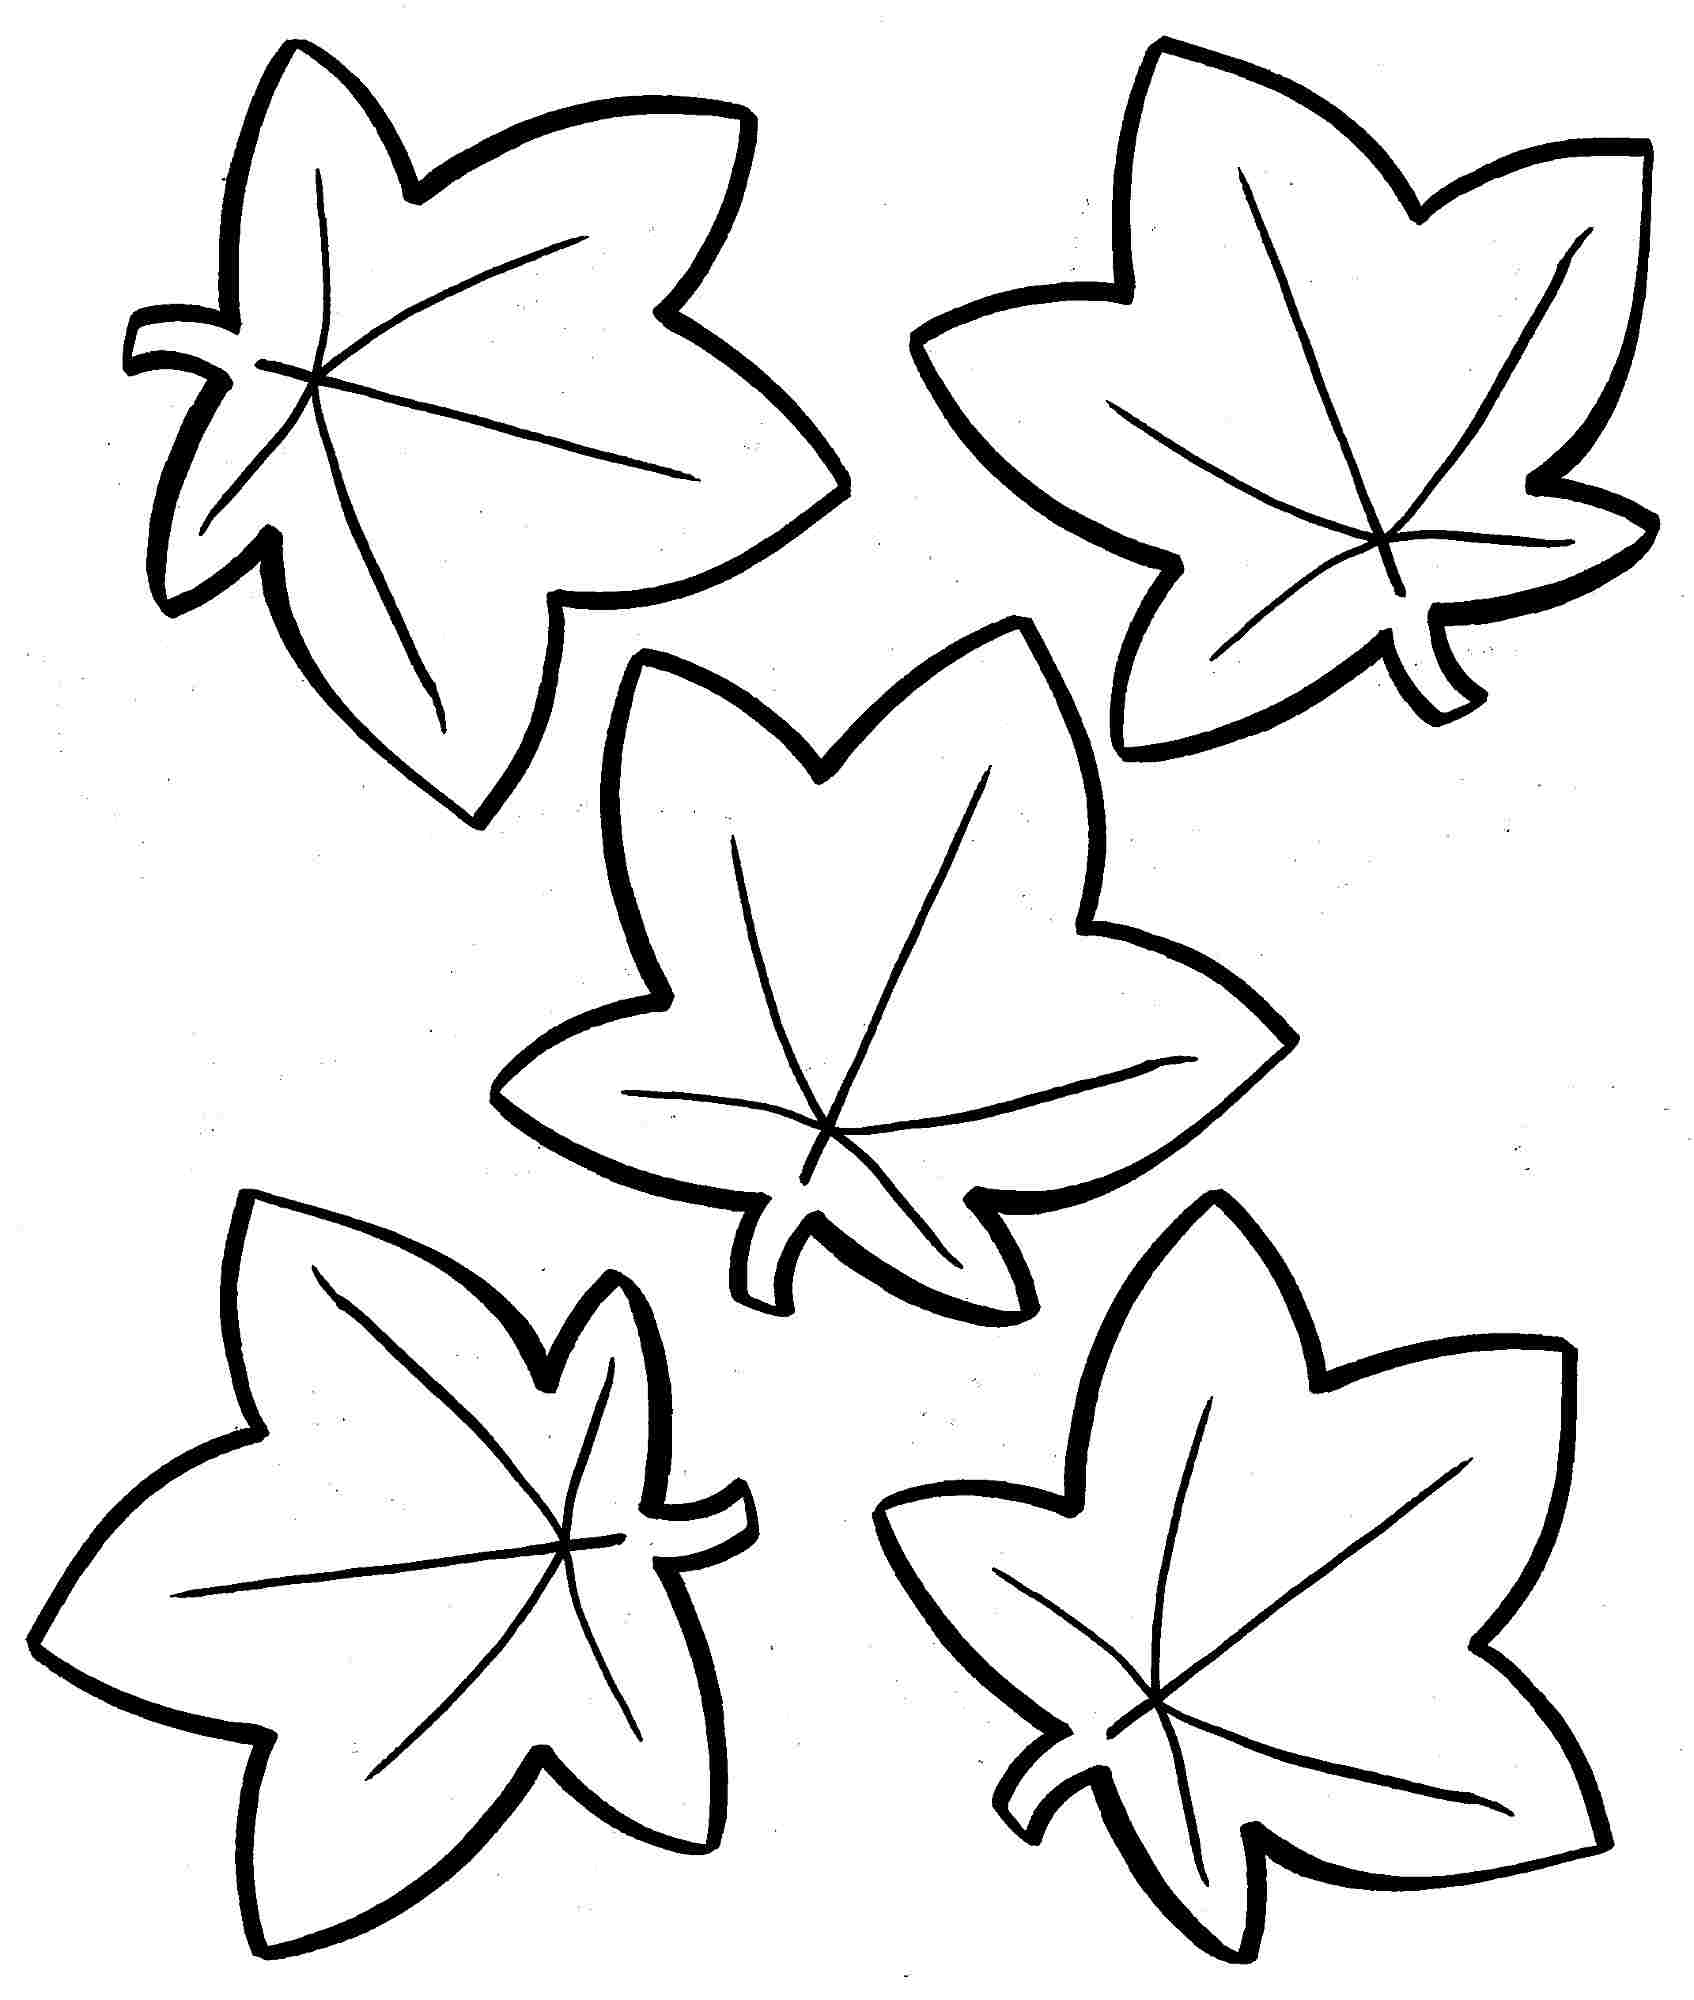 leaves to colour in free printable leaf coloring pages for kids cool2bkids to leaves colour in